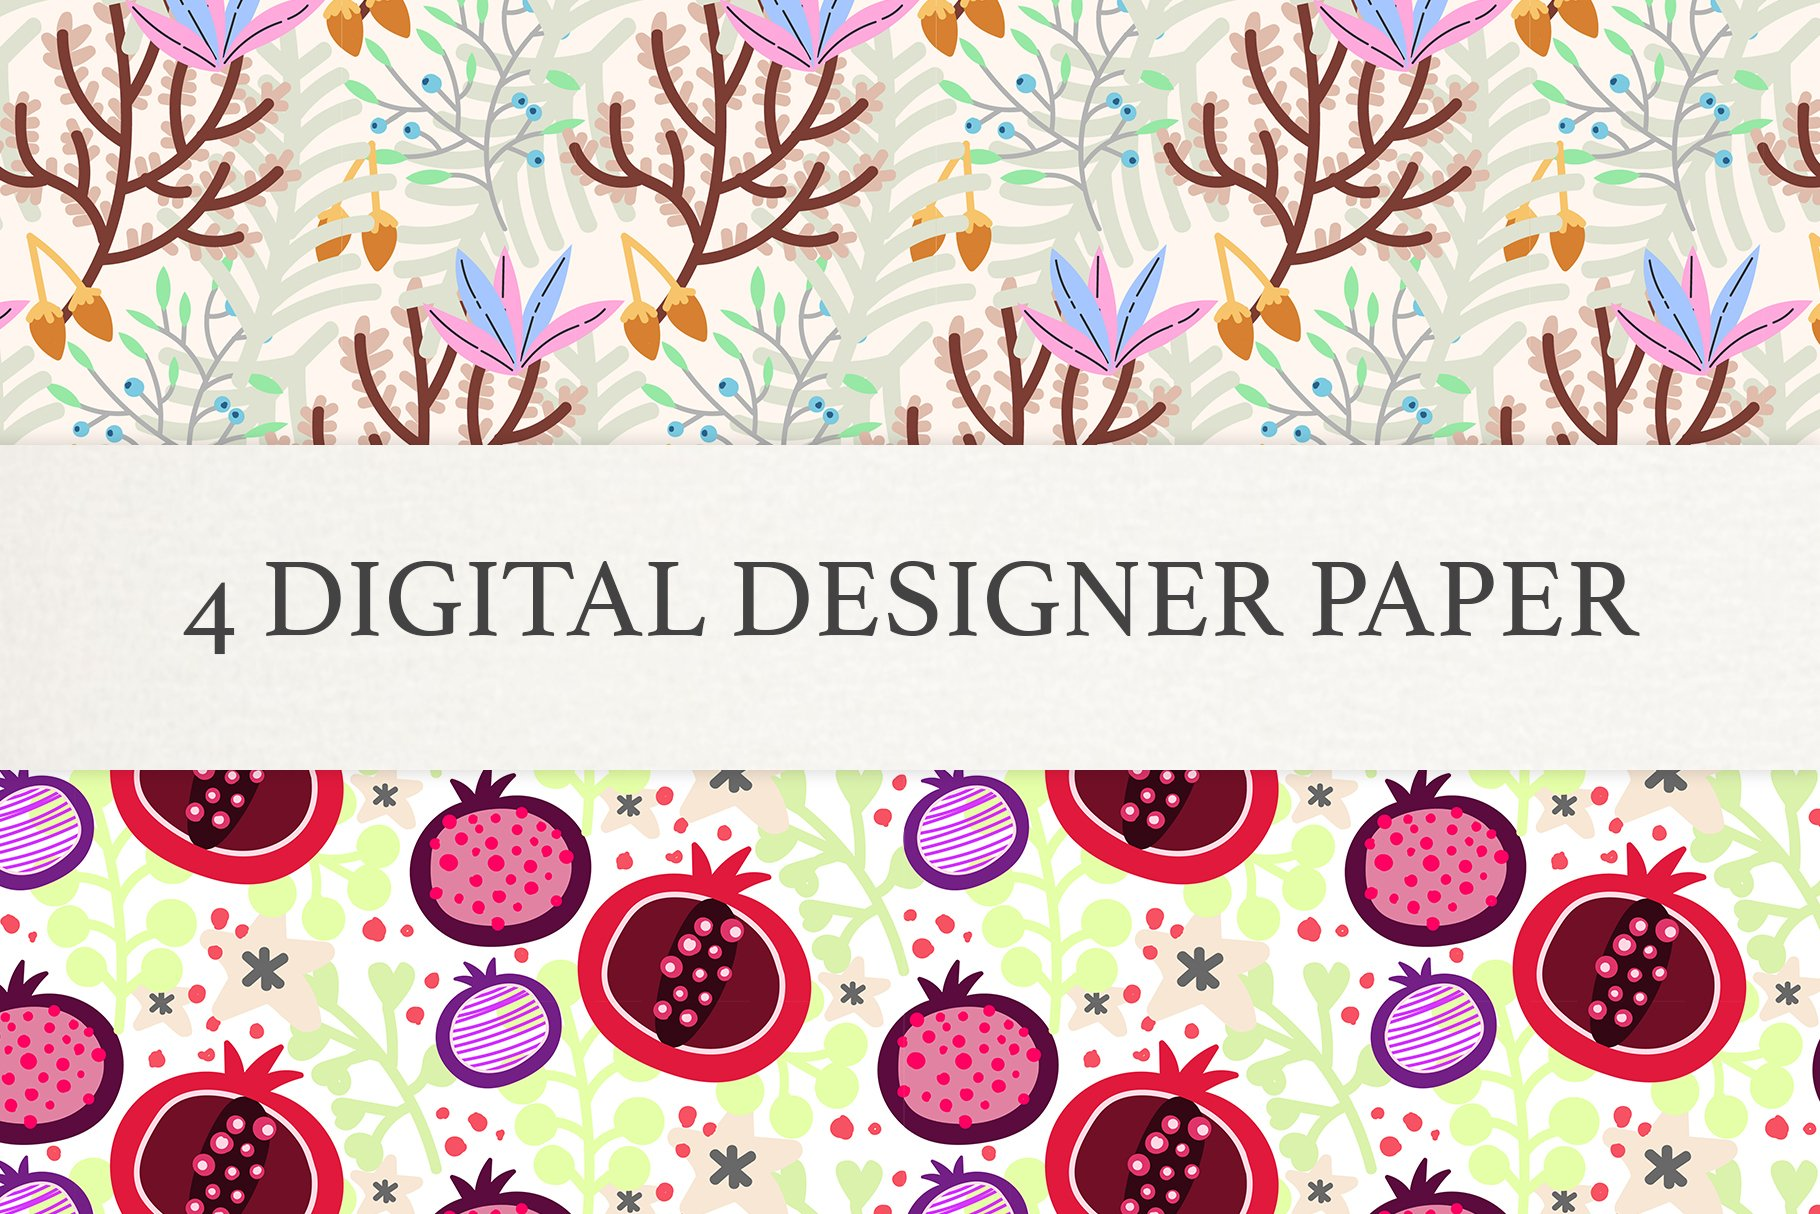 Floral Digital Paper, Scrapbook Papers, Seamless Patterns example image 4